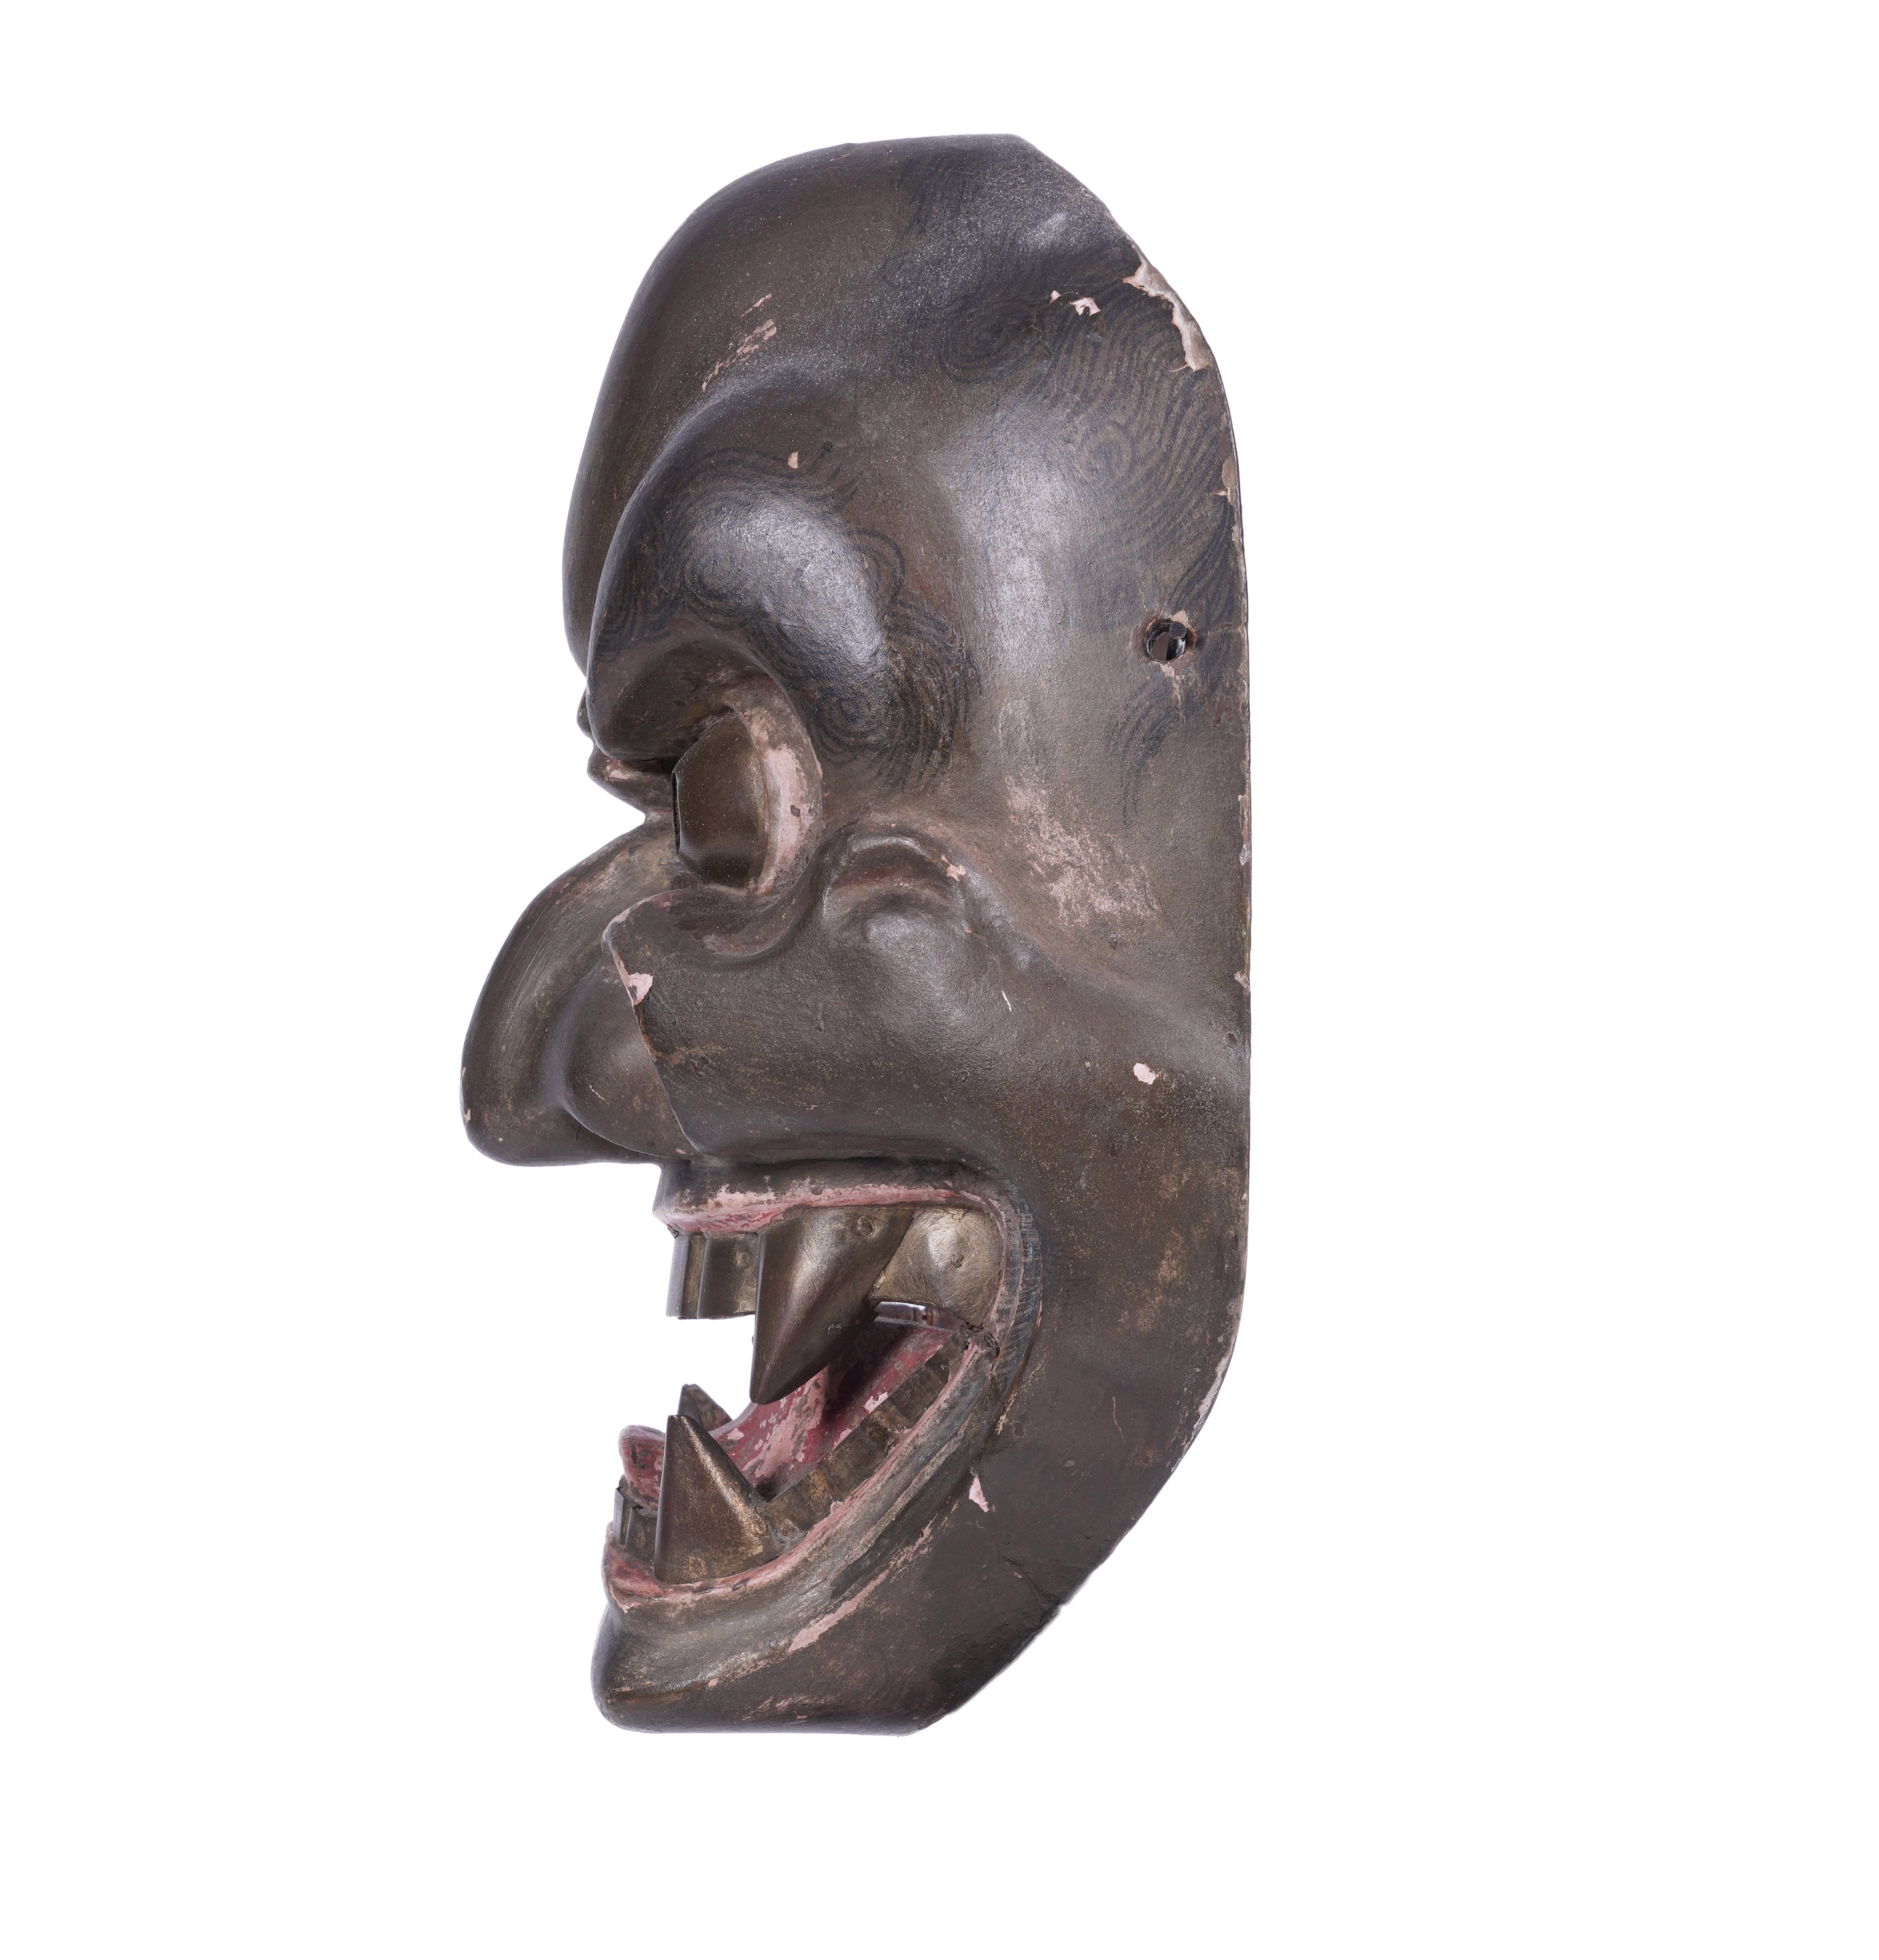 .A LACQUERED WOODEN MASK Japan, 19th century H: 21 cm - w: 15,5 cm Provenance: A curated selection - Image 2 of 4